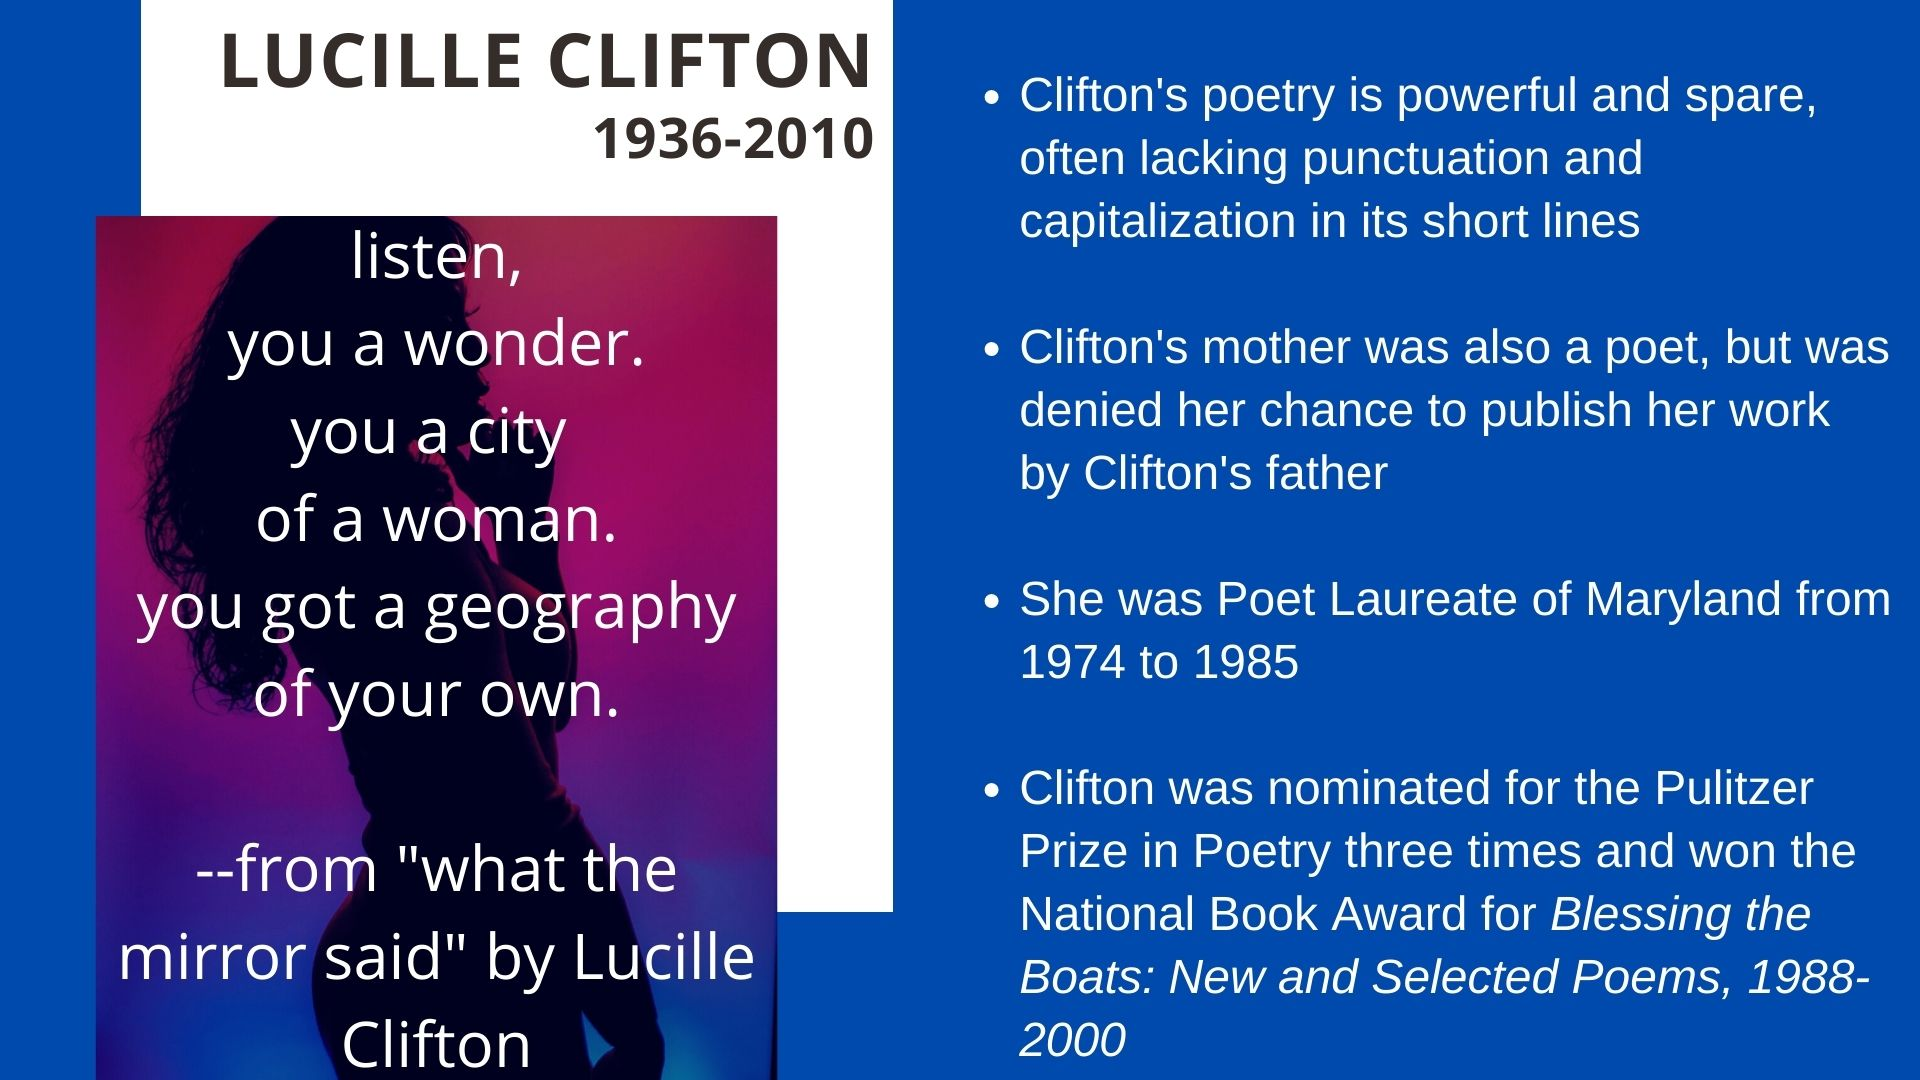 Lucille Clifton  1936-2010 Clifton's poetry is powerful and spare, often lacking punctuation and capitalization in its short lines    Clifton's mother was also a poet, but was denied her chance to publish her work by Clifton's father  She was Poet Laureate of Maryland from 1974 to 1985   Clifton was nominated for the Pulitzer Prize in Poetry three times and won the National Book Award for Blessing the Boats: New and Selected Poems, 1988-2000